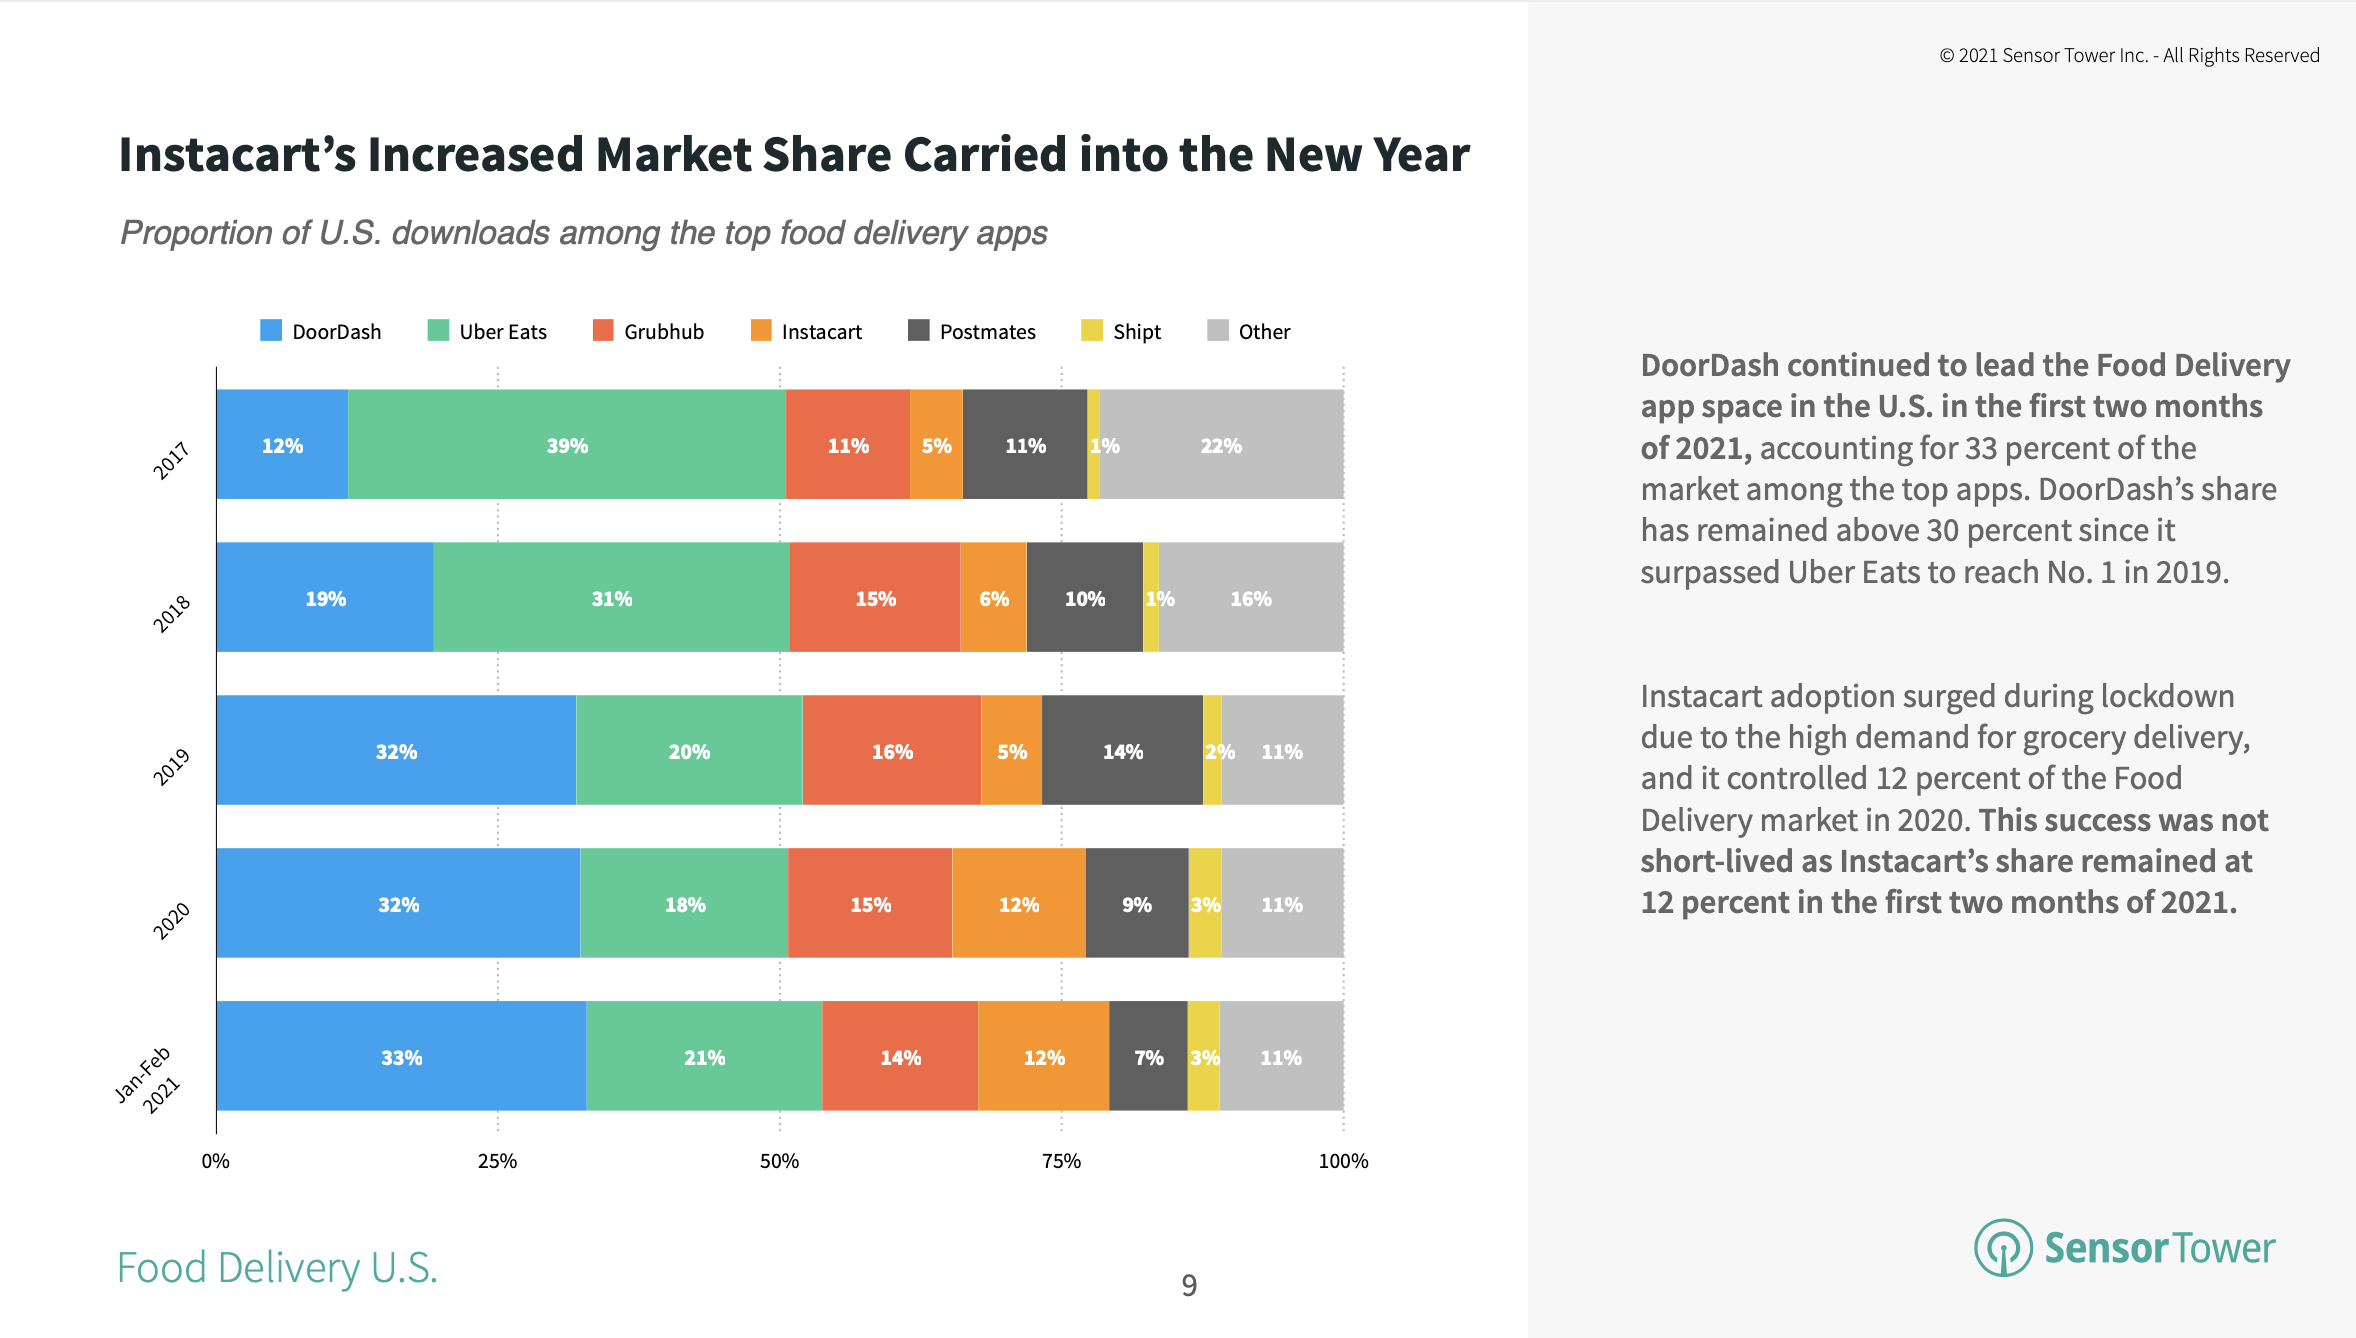 Instacart's 12% market share among leading food delivery apps continues through 2021.